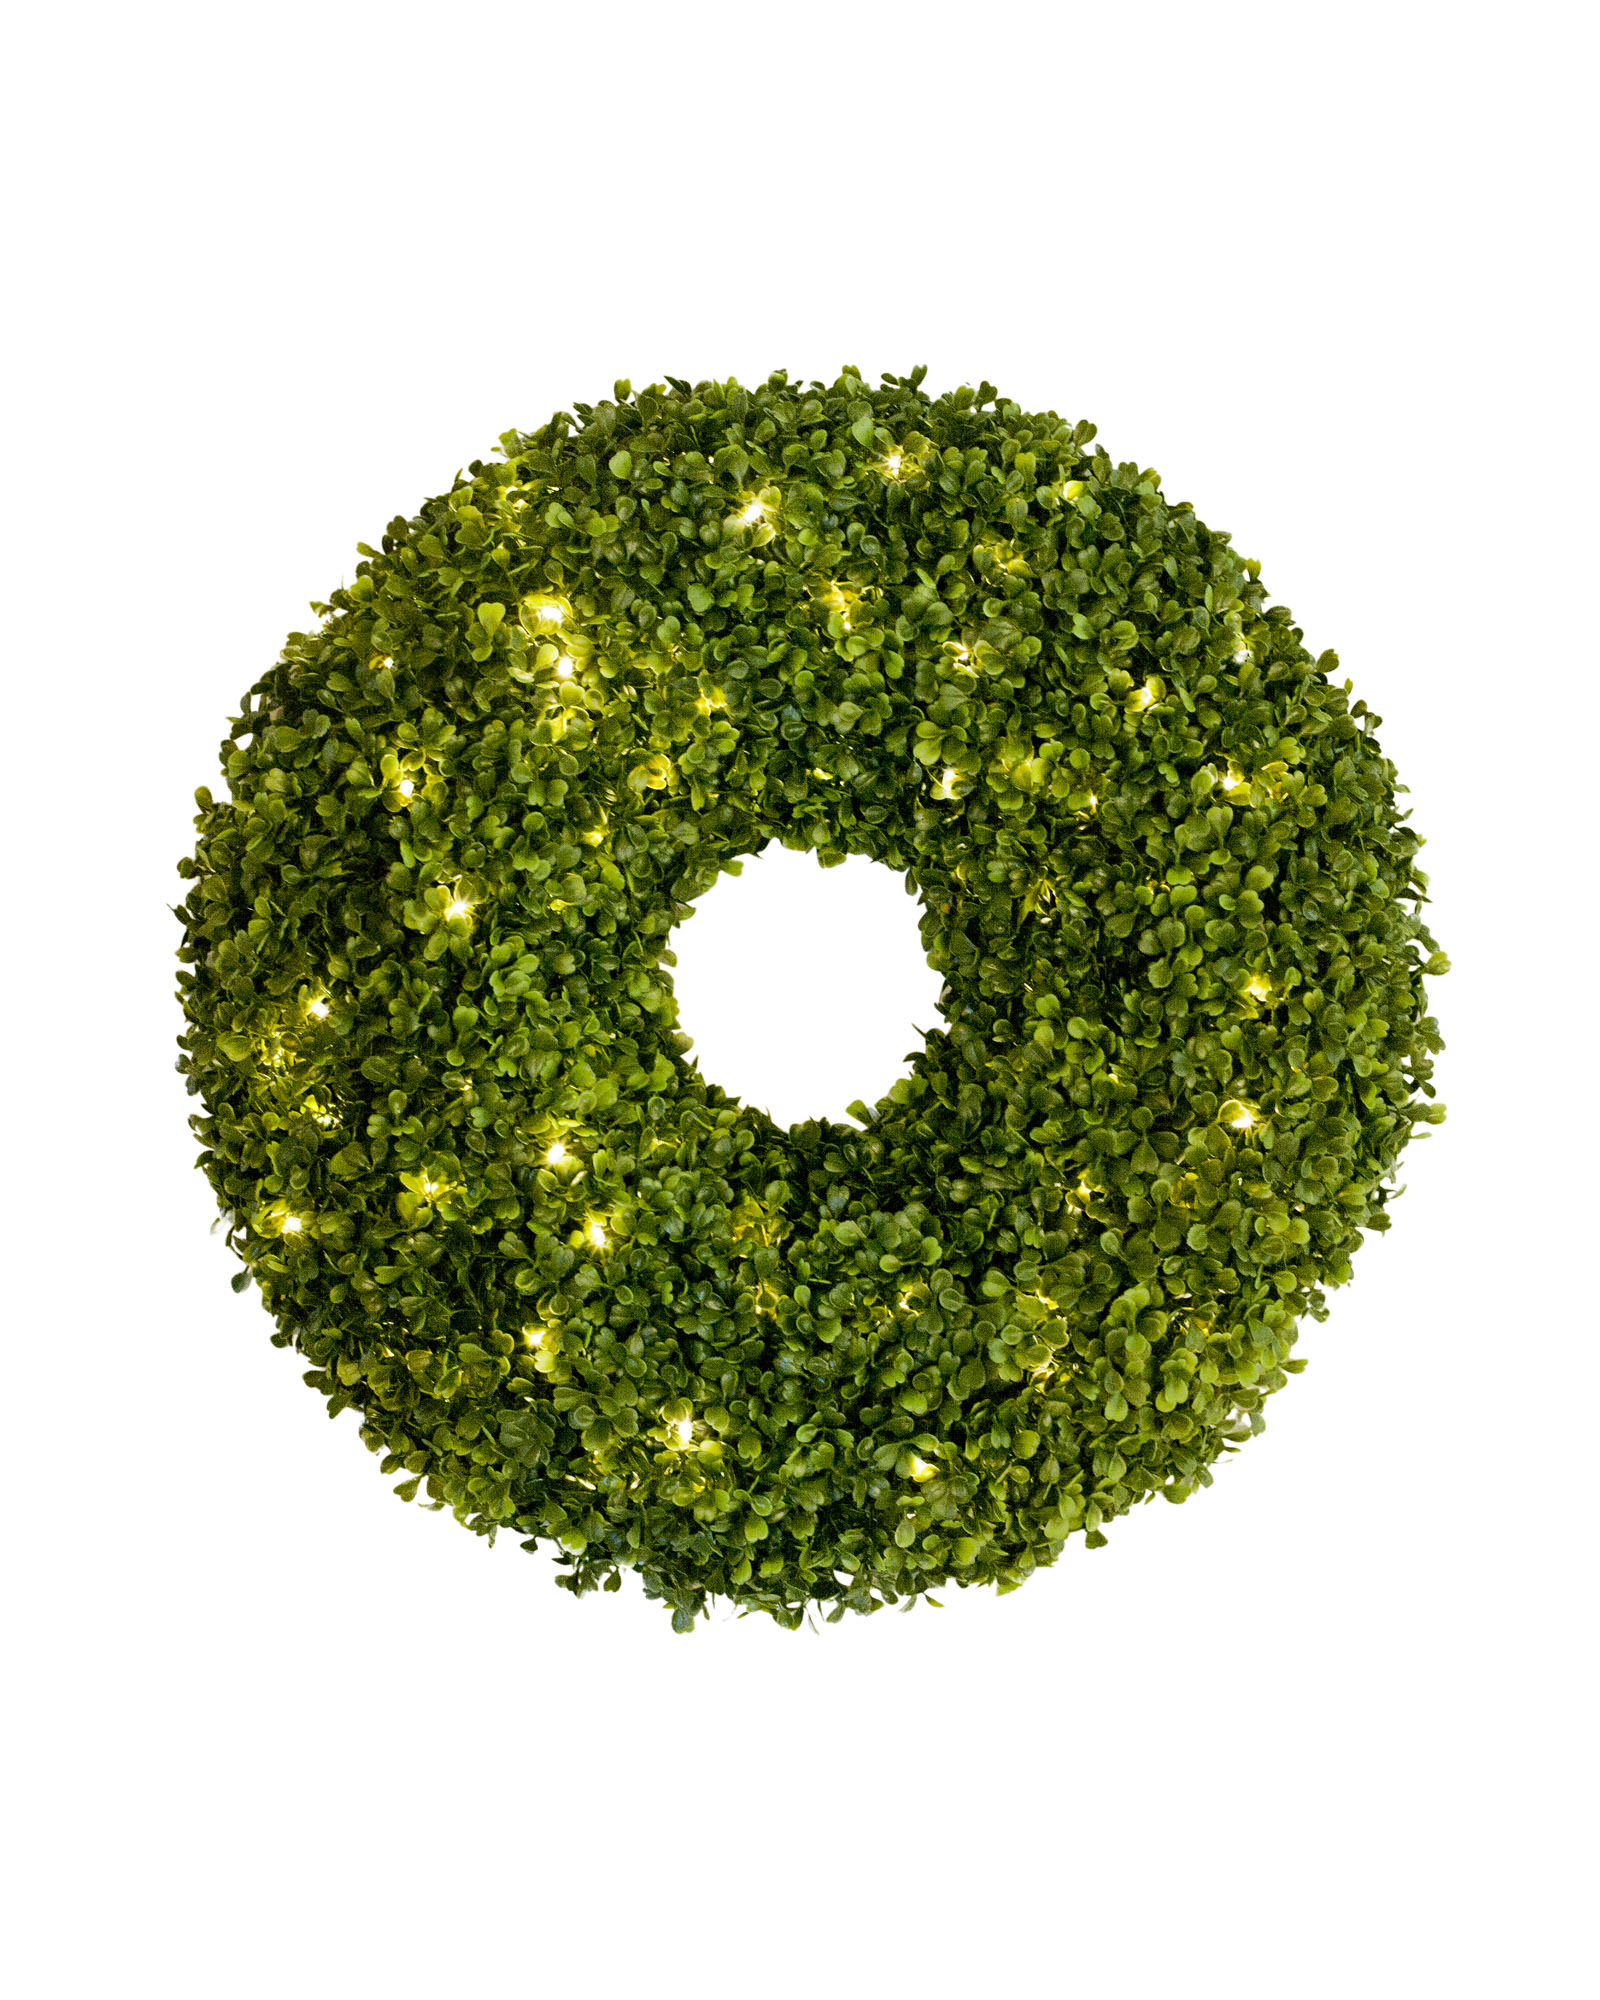 Interesting Artificial Boxwood Wreath with Simple Design for Exterior: Small Green Round Artificial Boxwood Wreath